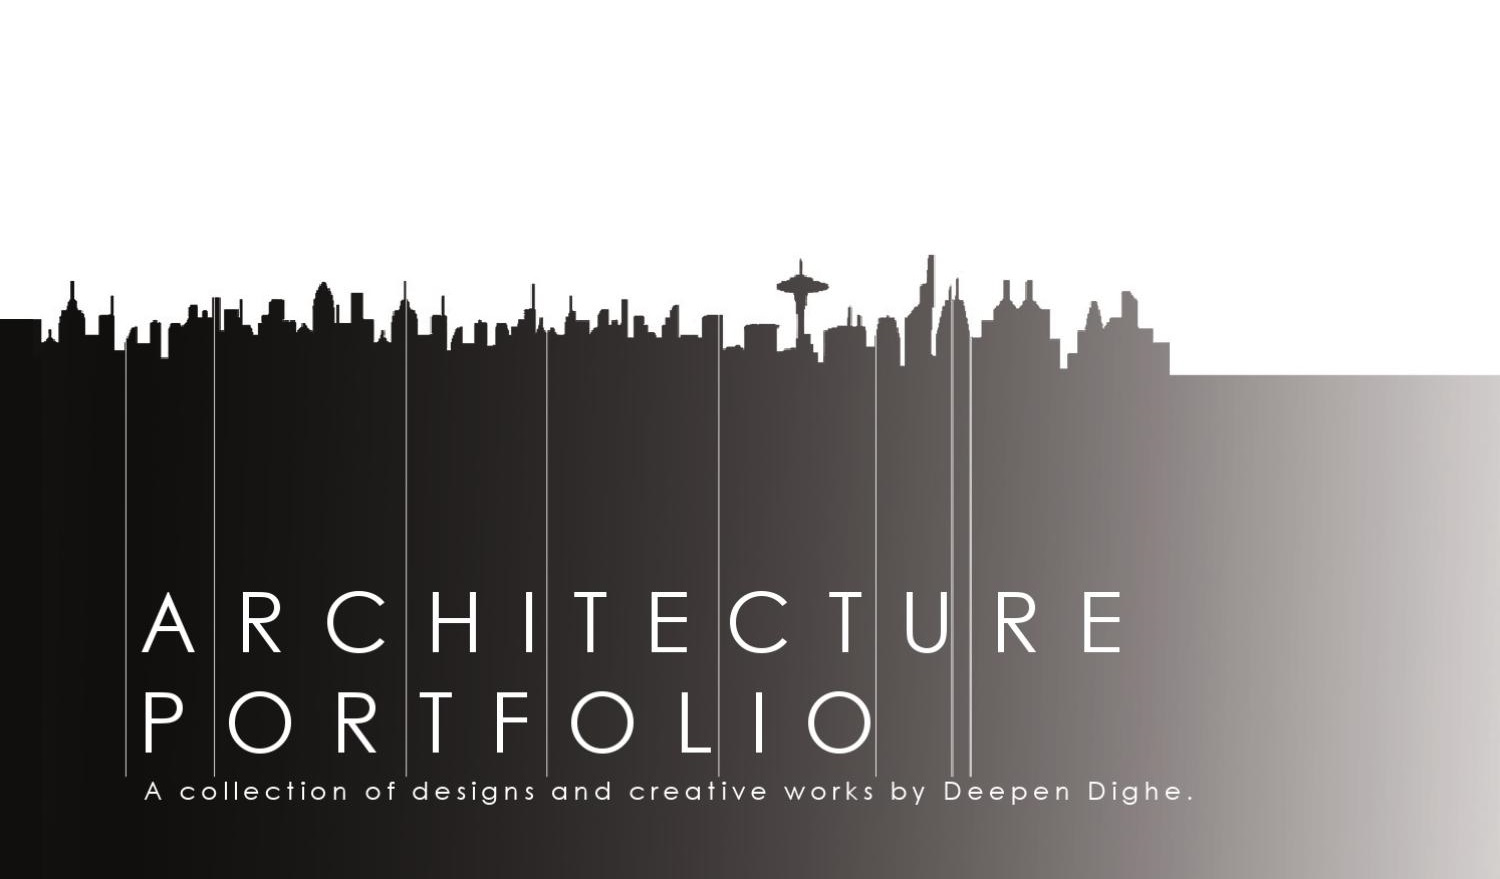 architecture portfolio, design by Deepen Dighe